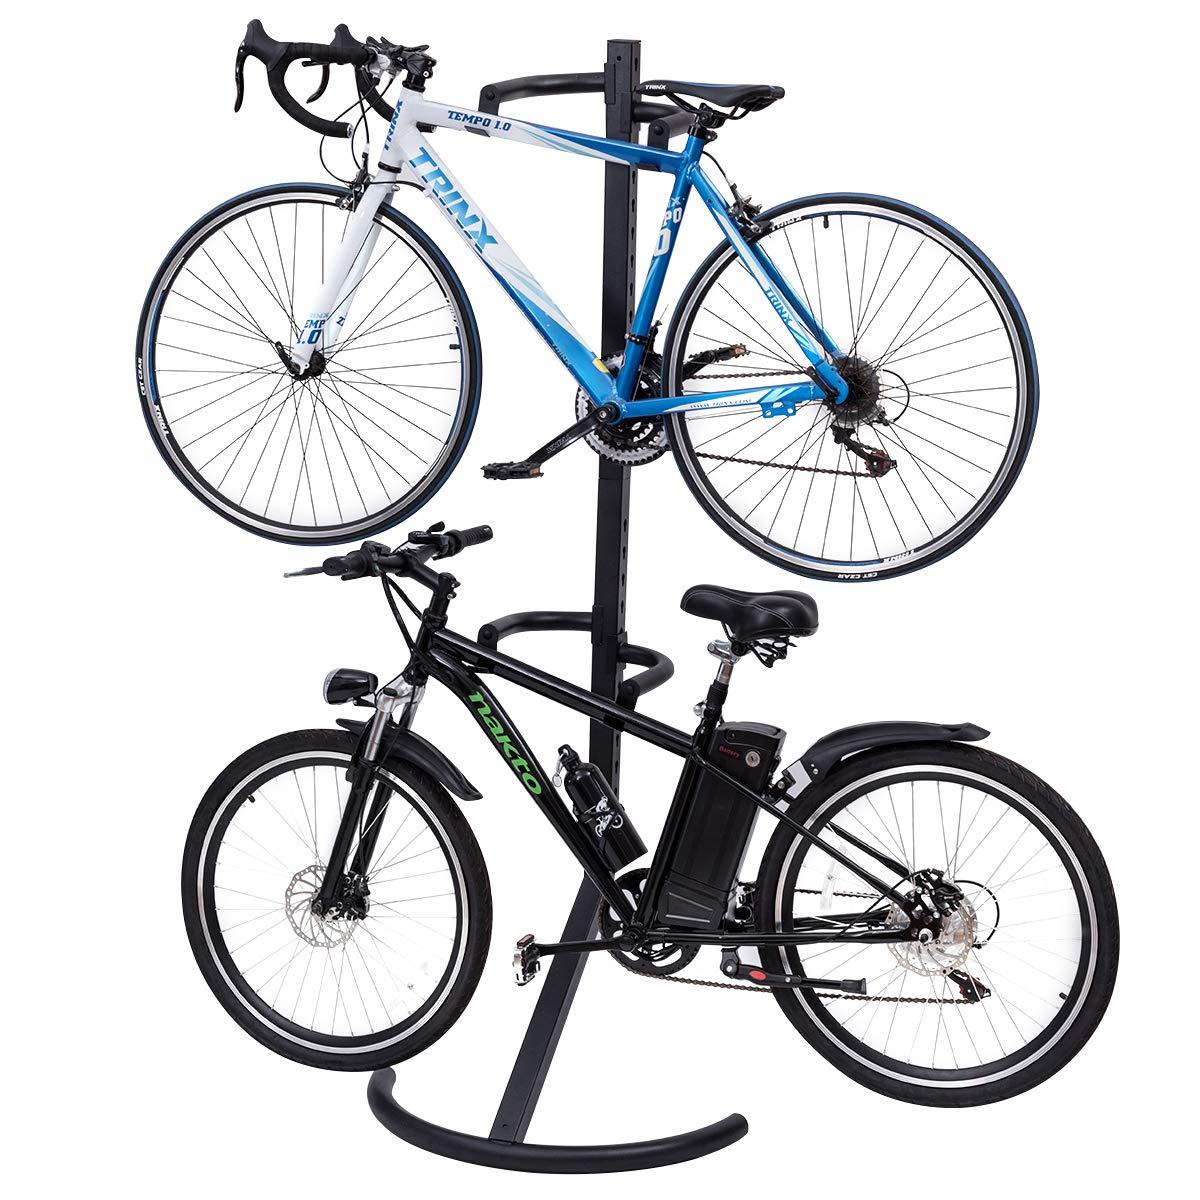 Goplus Gravity Freestanding Bike Stand Adjustable Height Two-Bike Storage Rack Heavy Duty for Bicycle Parking with 100lbs Weight Capacity by Goplus